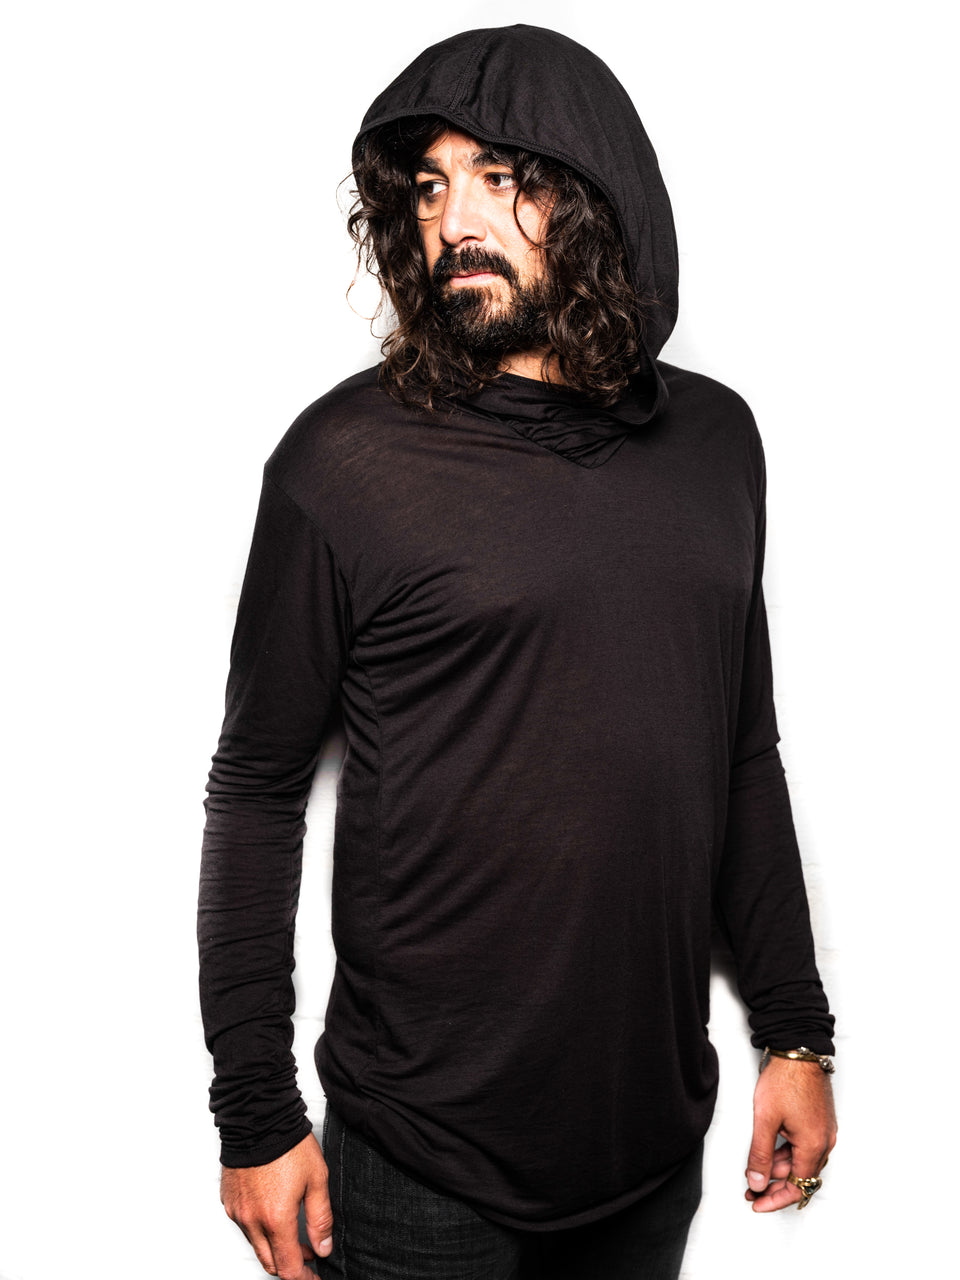 Long Sleeve V-Neck Shirt with Hood - Black Magick